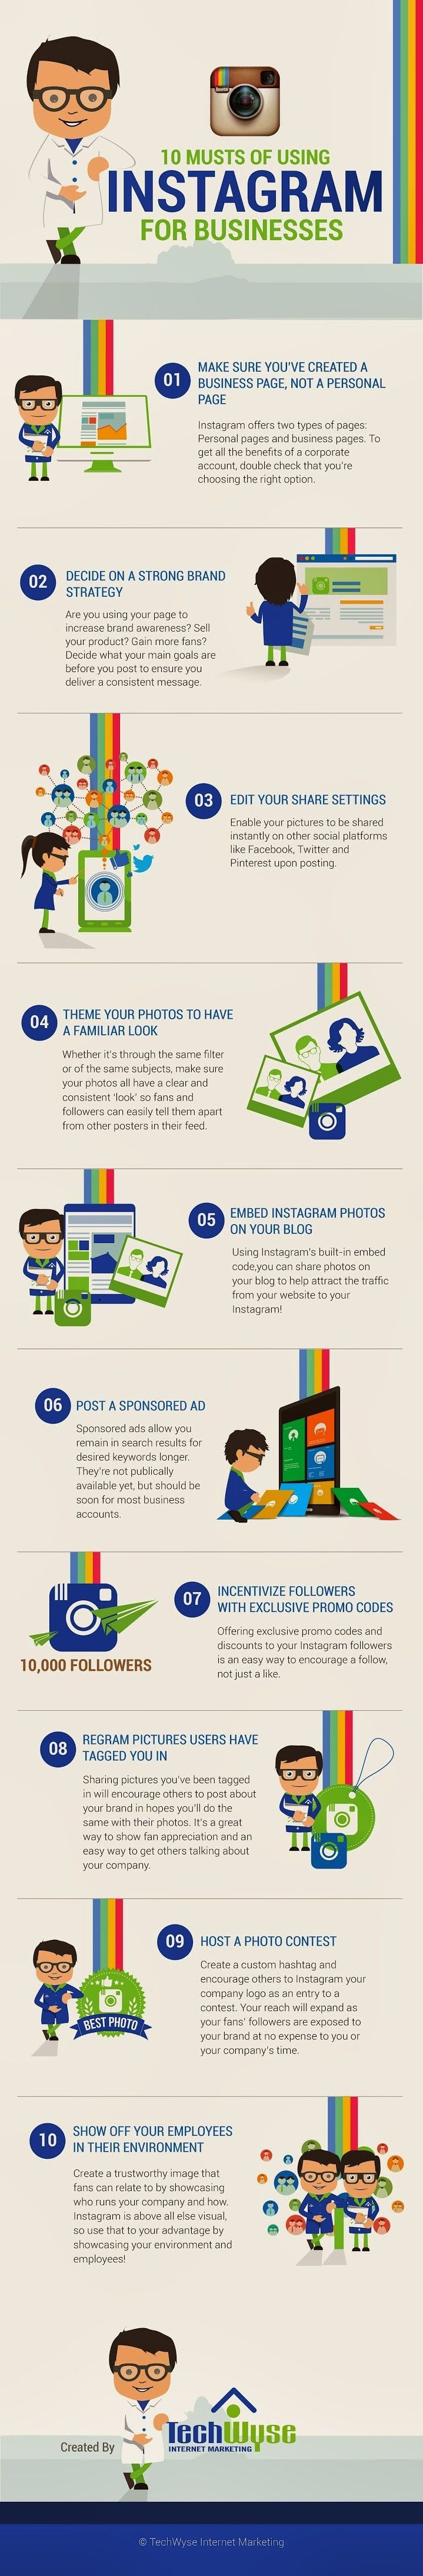 10 Musts of Using Instagram for Business